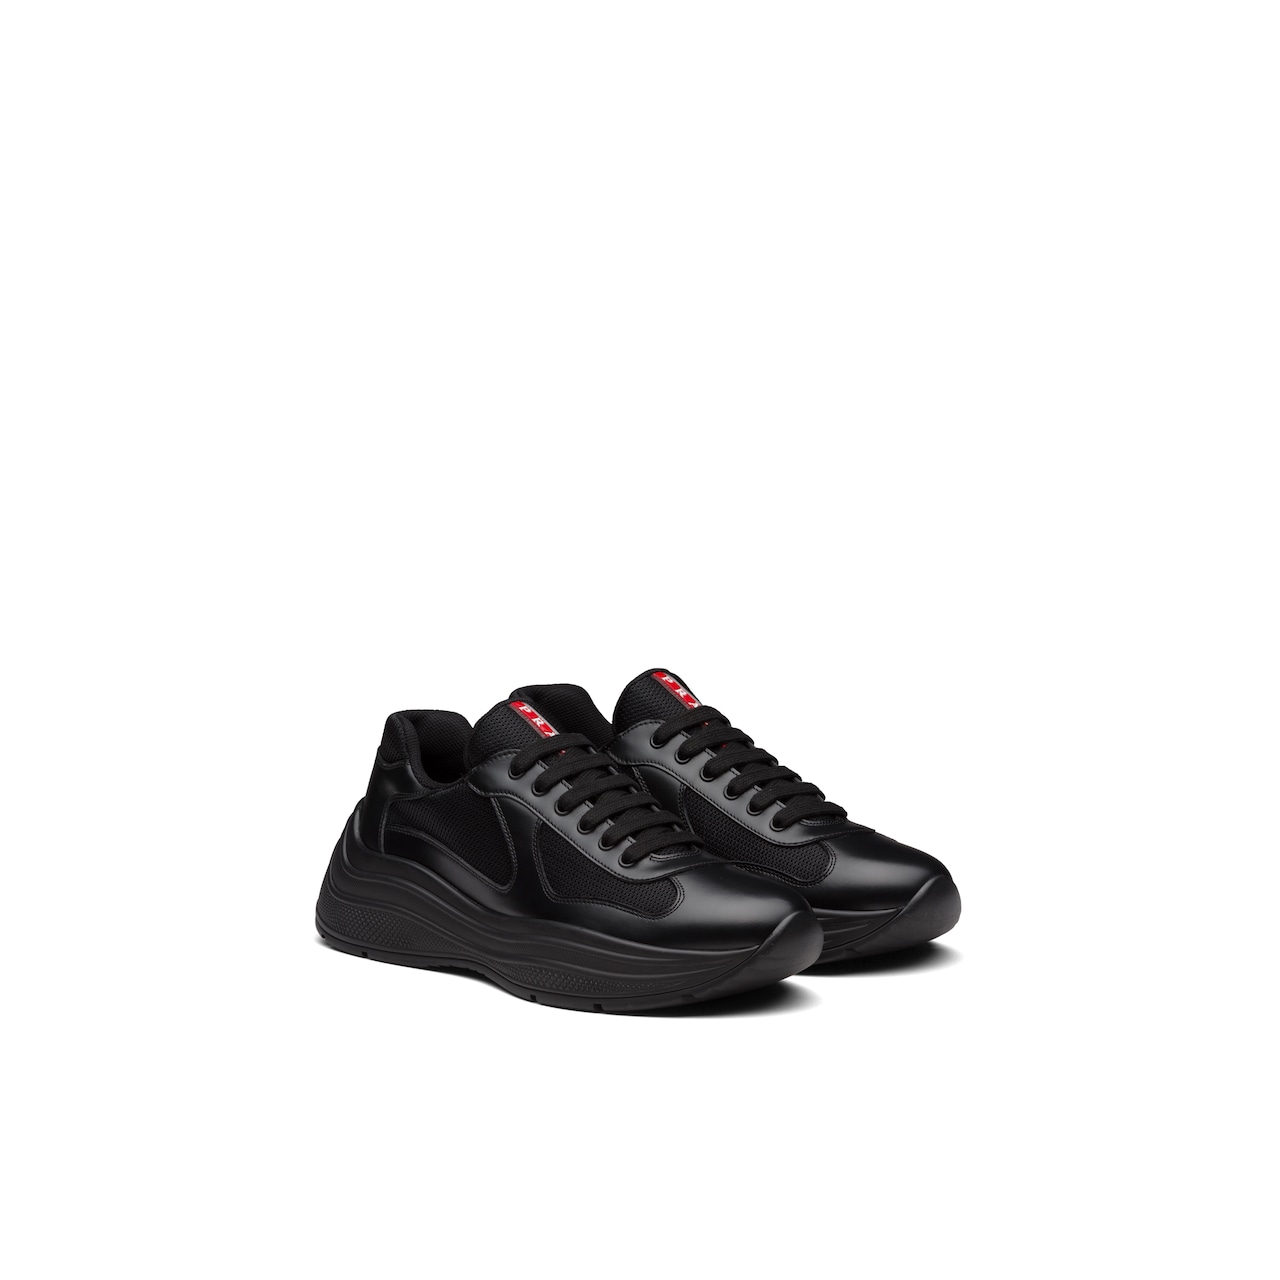 Prada America'S Cup Xl Leather Sneakers 1